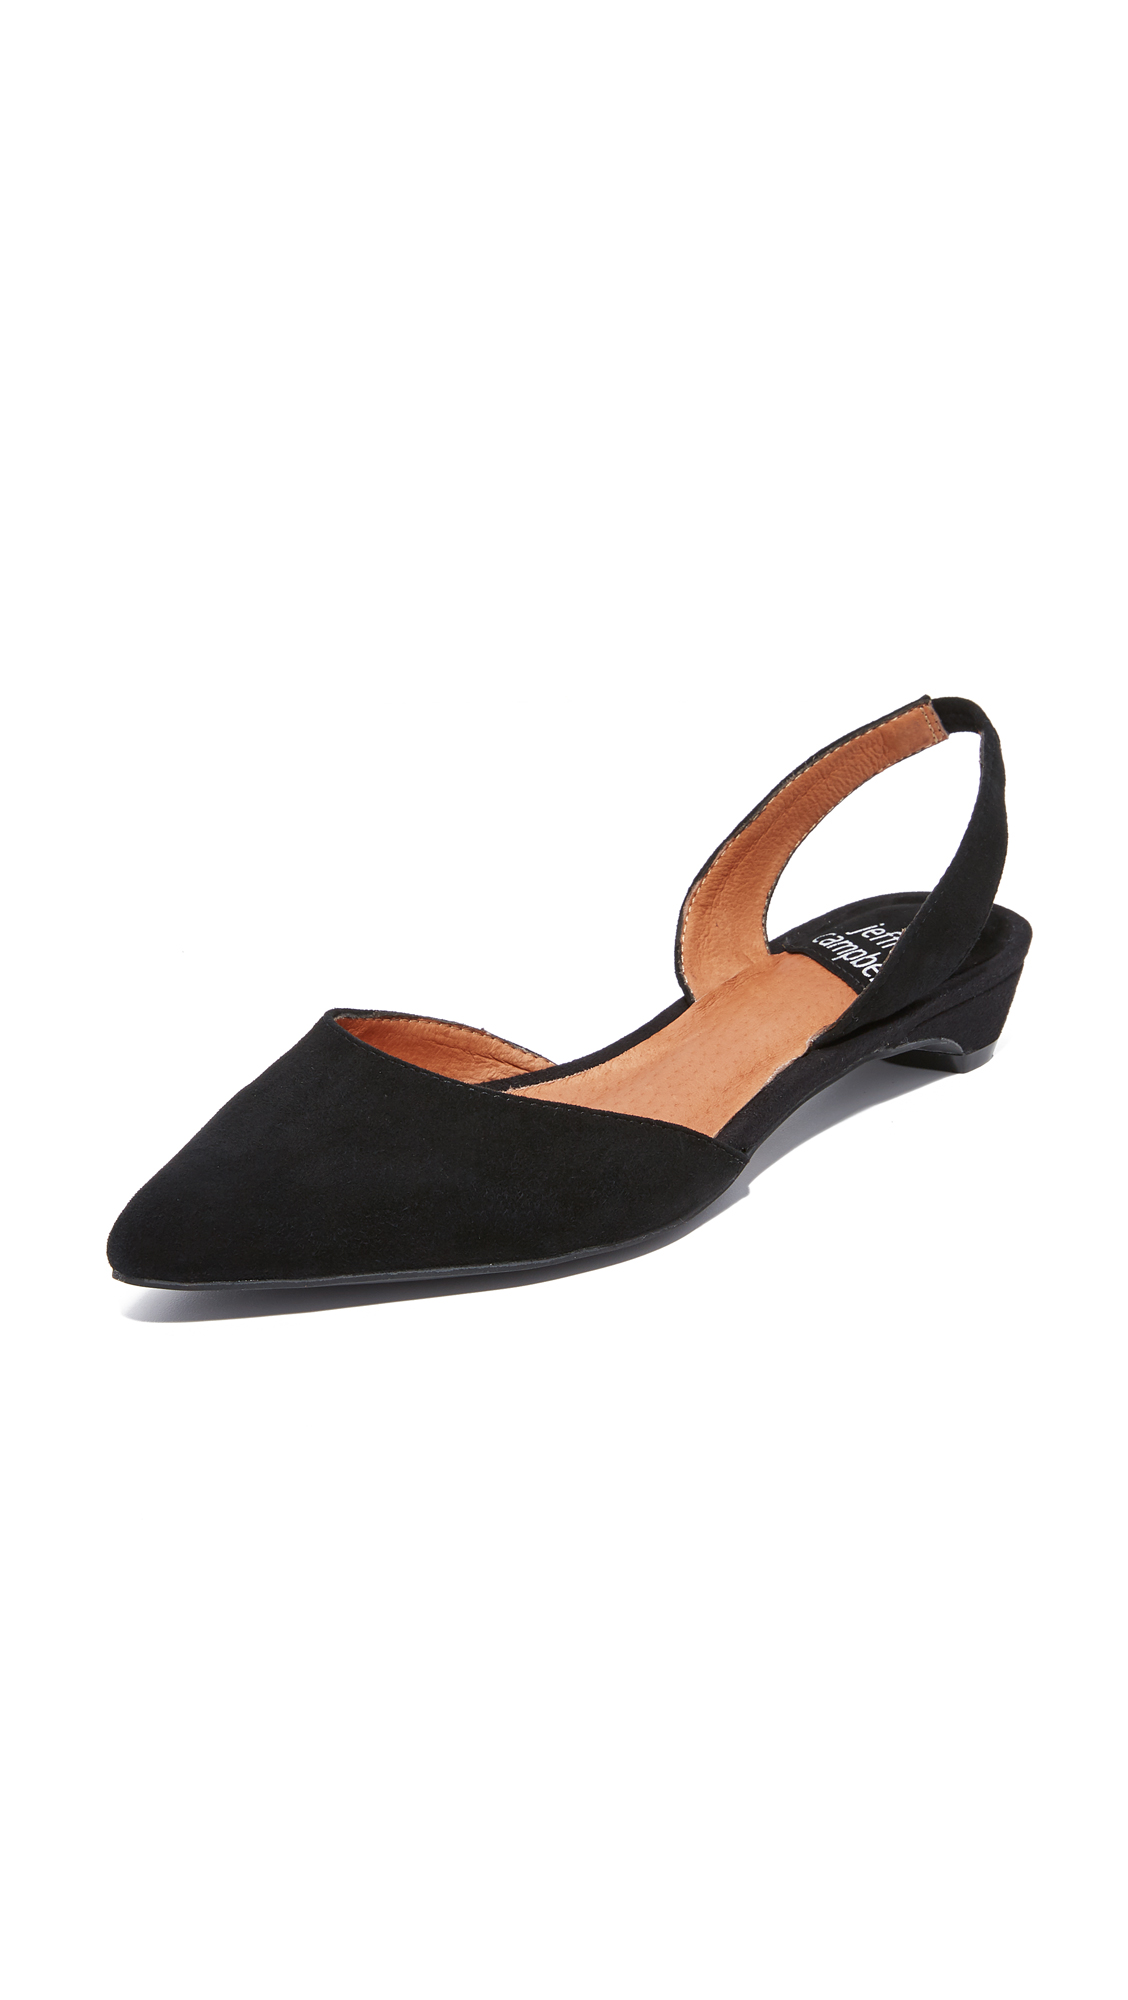 Jeffrey Campbell Shree Suede Flats - Black